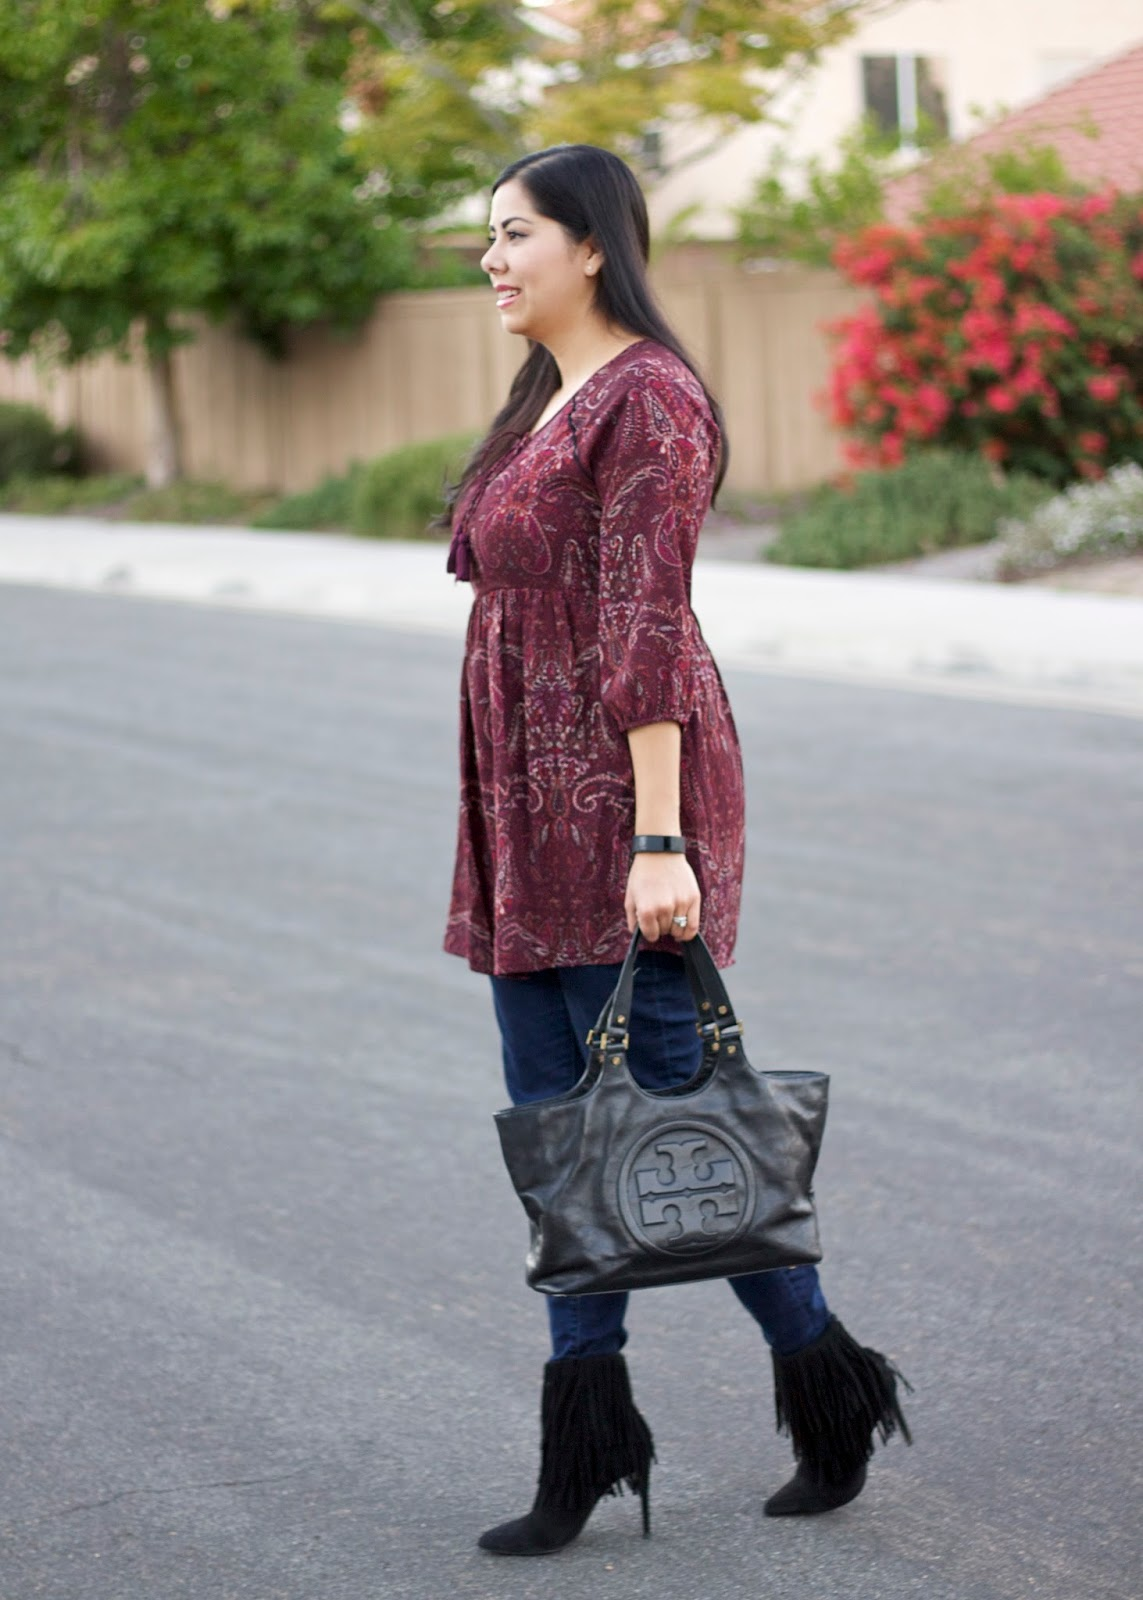 Fall paisleys, san diego fashion blogger, san diego style blogger, fall 2015 outfit, san diego fall fashion